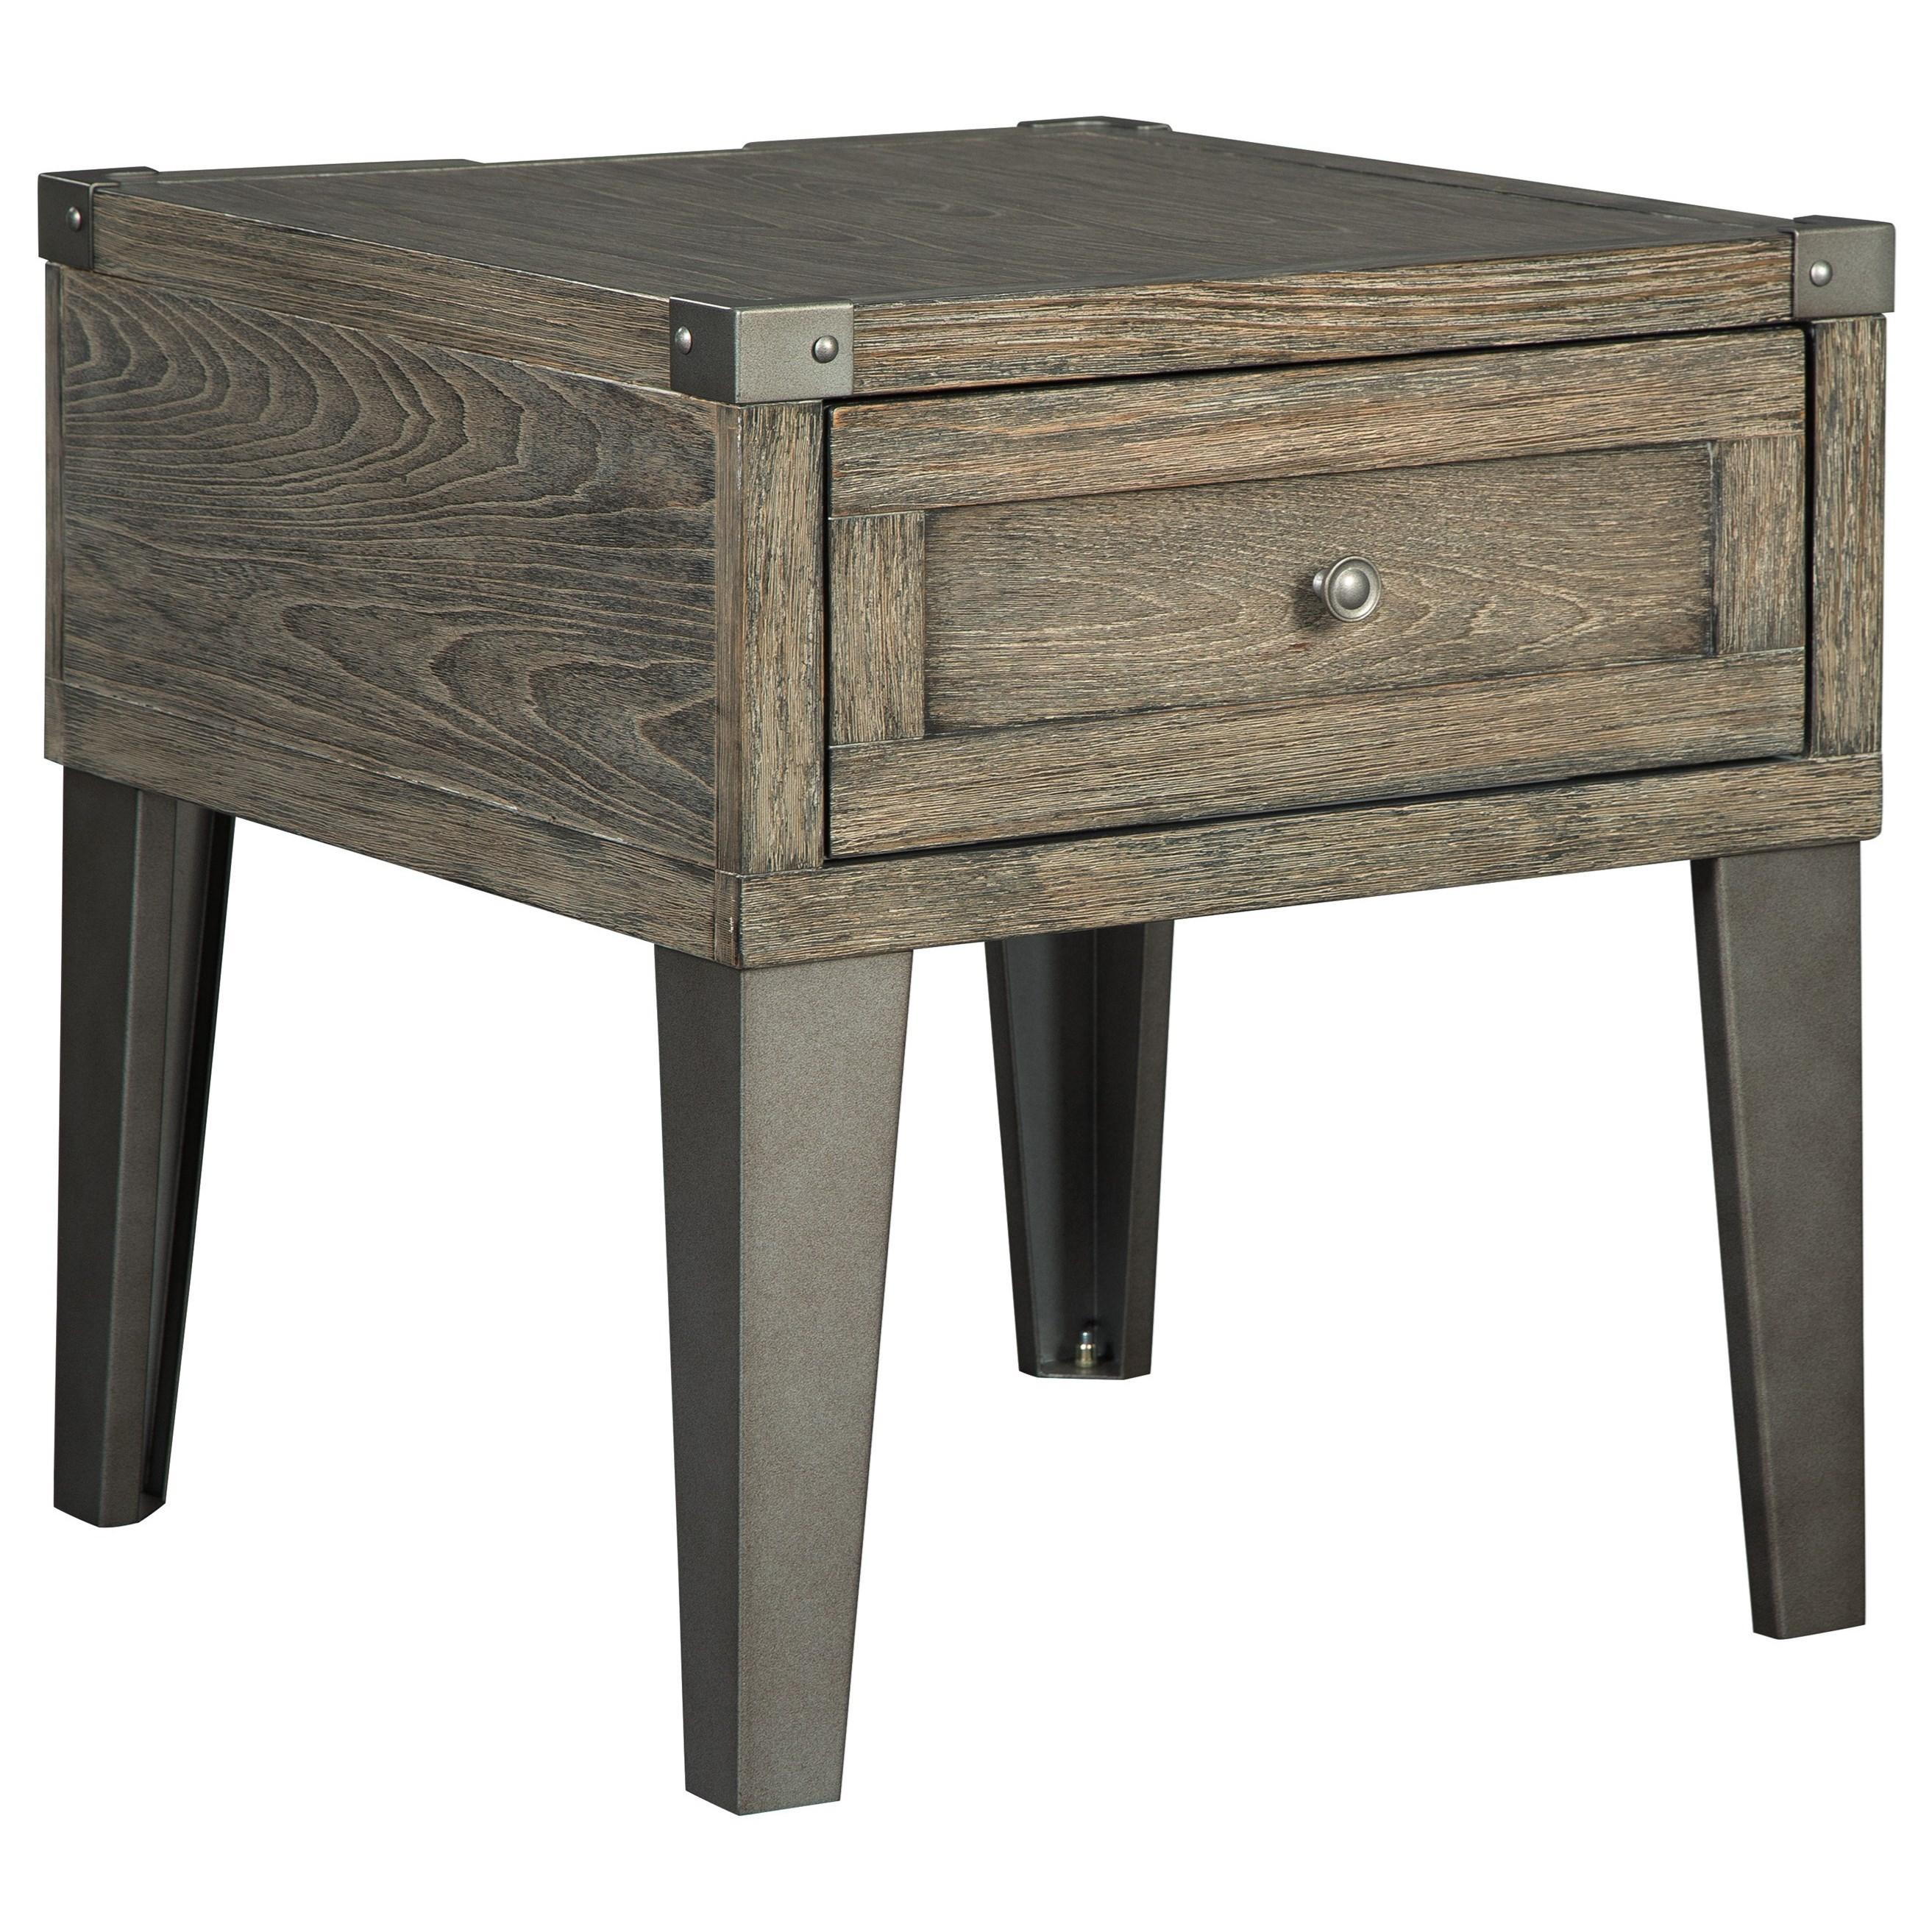 Chazney Rectangular End Table by Signature Design by Ashley at Beck's Furniture